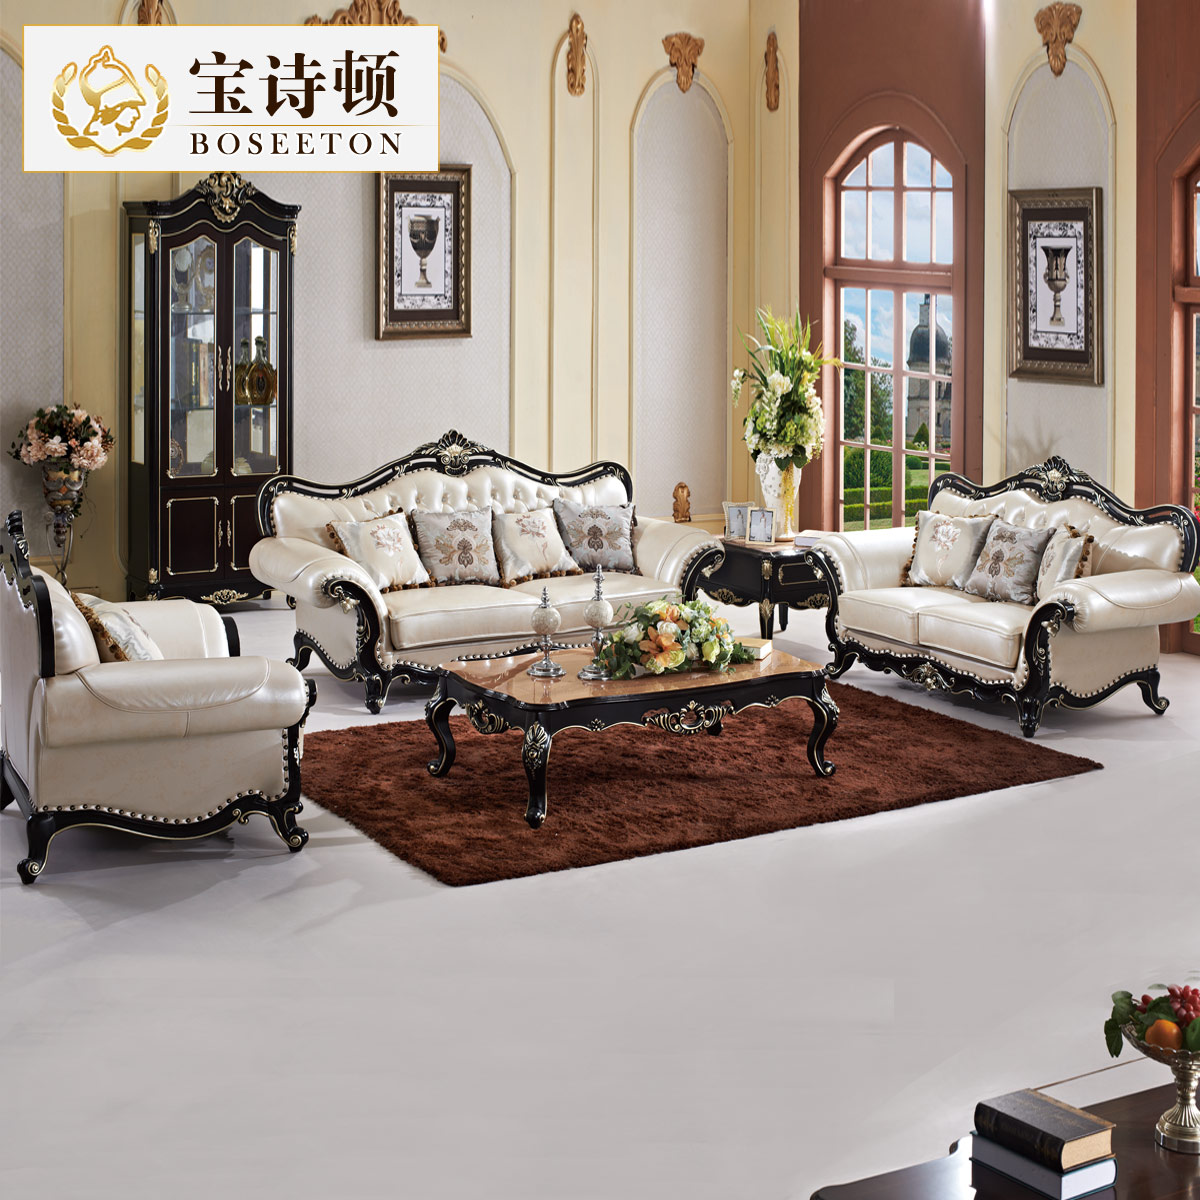 Buy Bao Liston SO12 Continental Carved Wood Sofa Sofa Leather Sofa Leather  Sofa Living Room Furniture Sofa Combination In Cheap Price On M.alibaba.com